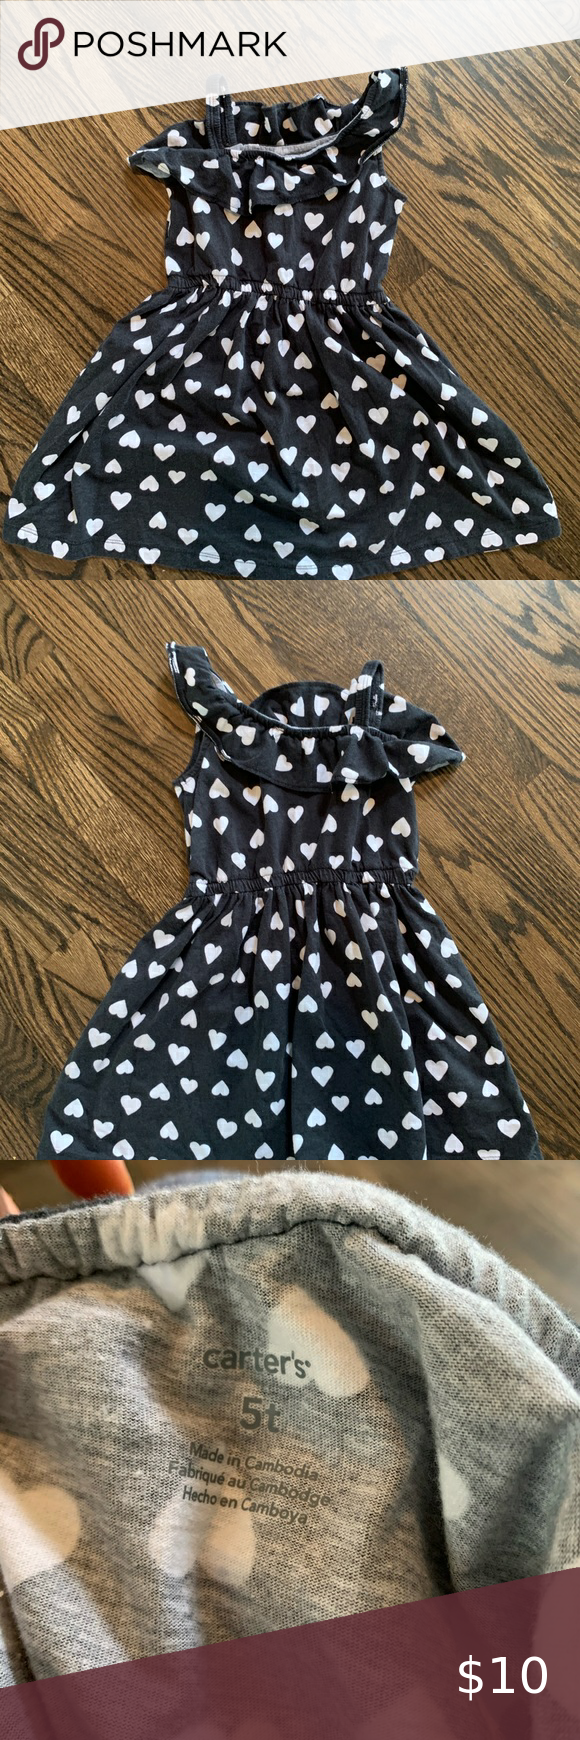 Girls 5t Black And White Dress From Carters Girls Size 5t Black And White Dress With Hearts From Carters Per Black N White Dress White Dress Carters Dresses [ 1740 x 580 Pixel ]